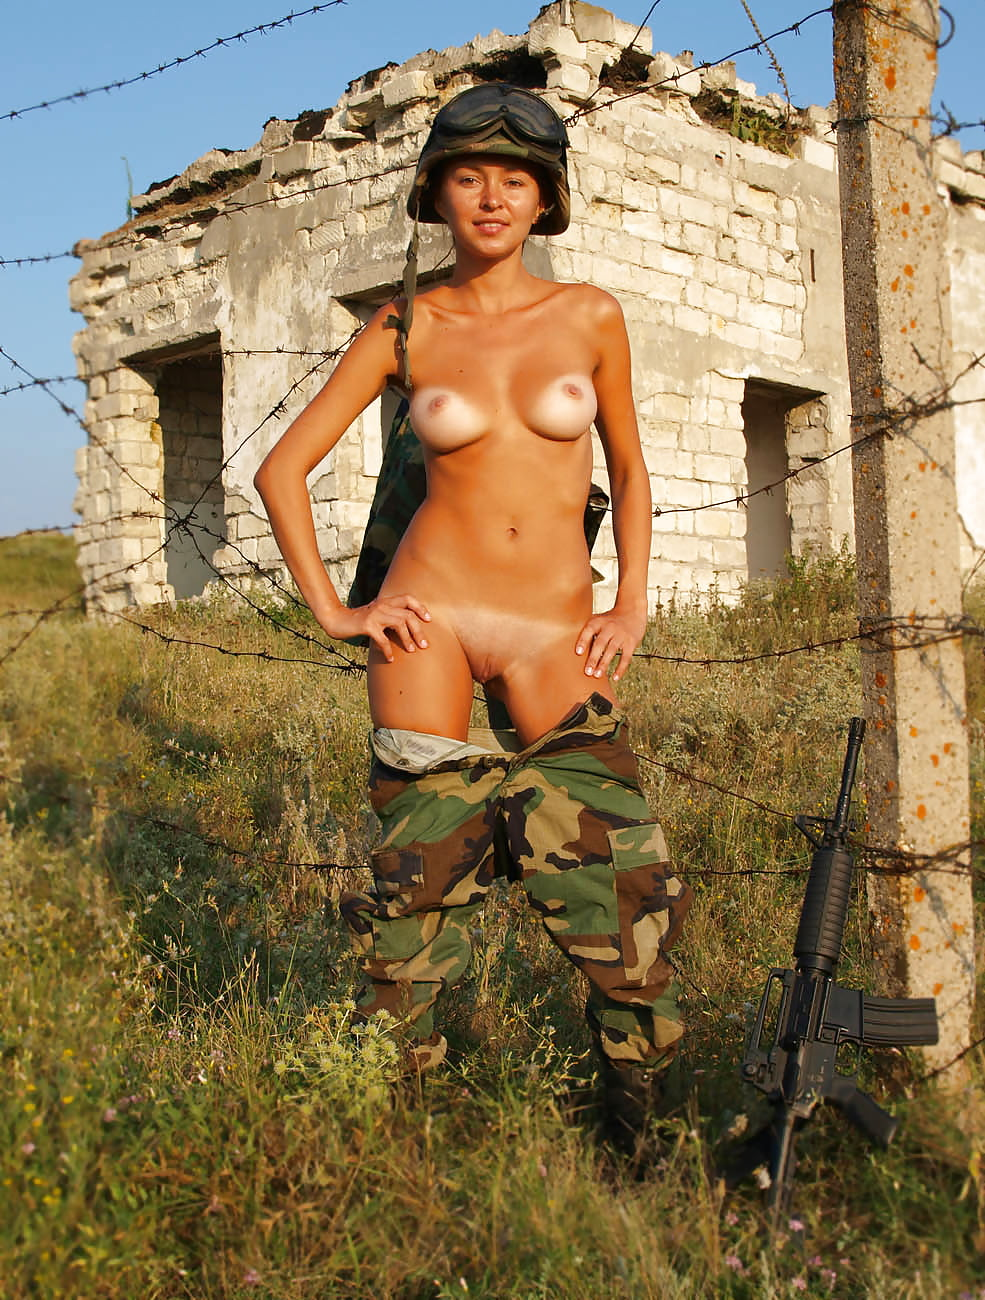 Girl soldiers naked and